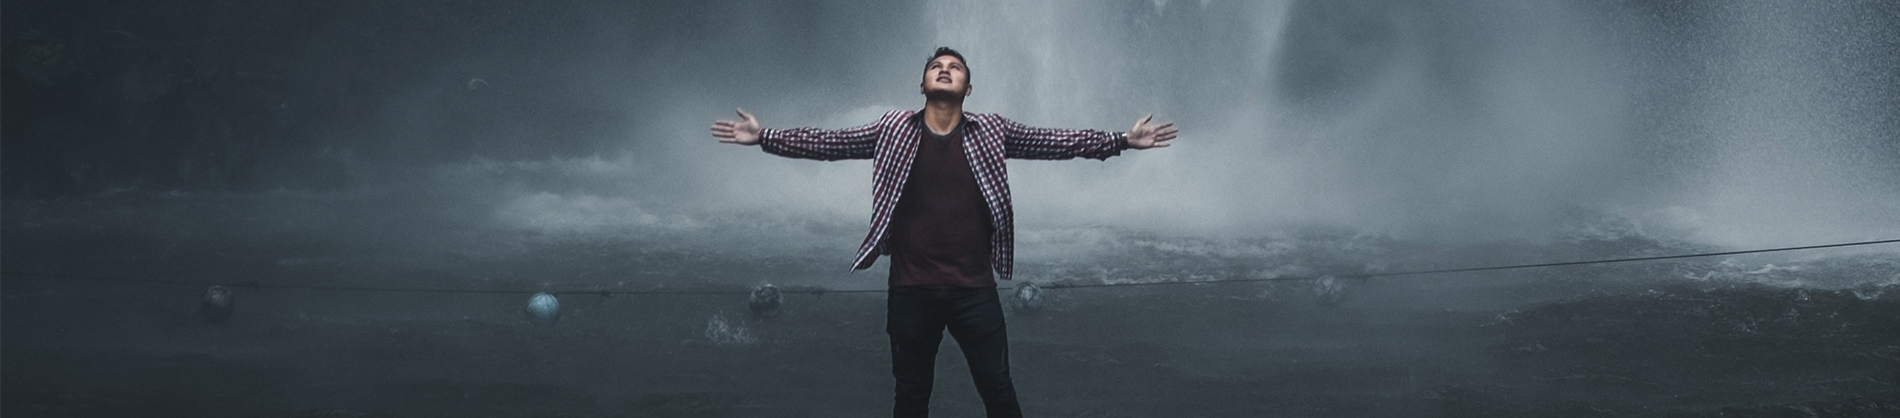 A man in a checked shirt with his arms wide in front of a cloudy landscape